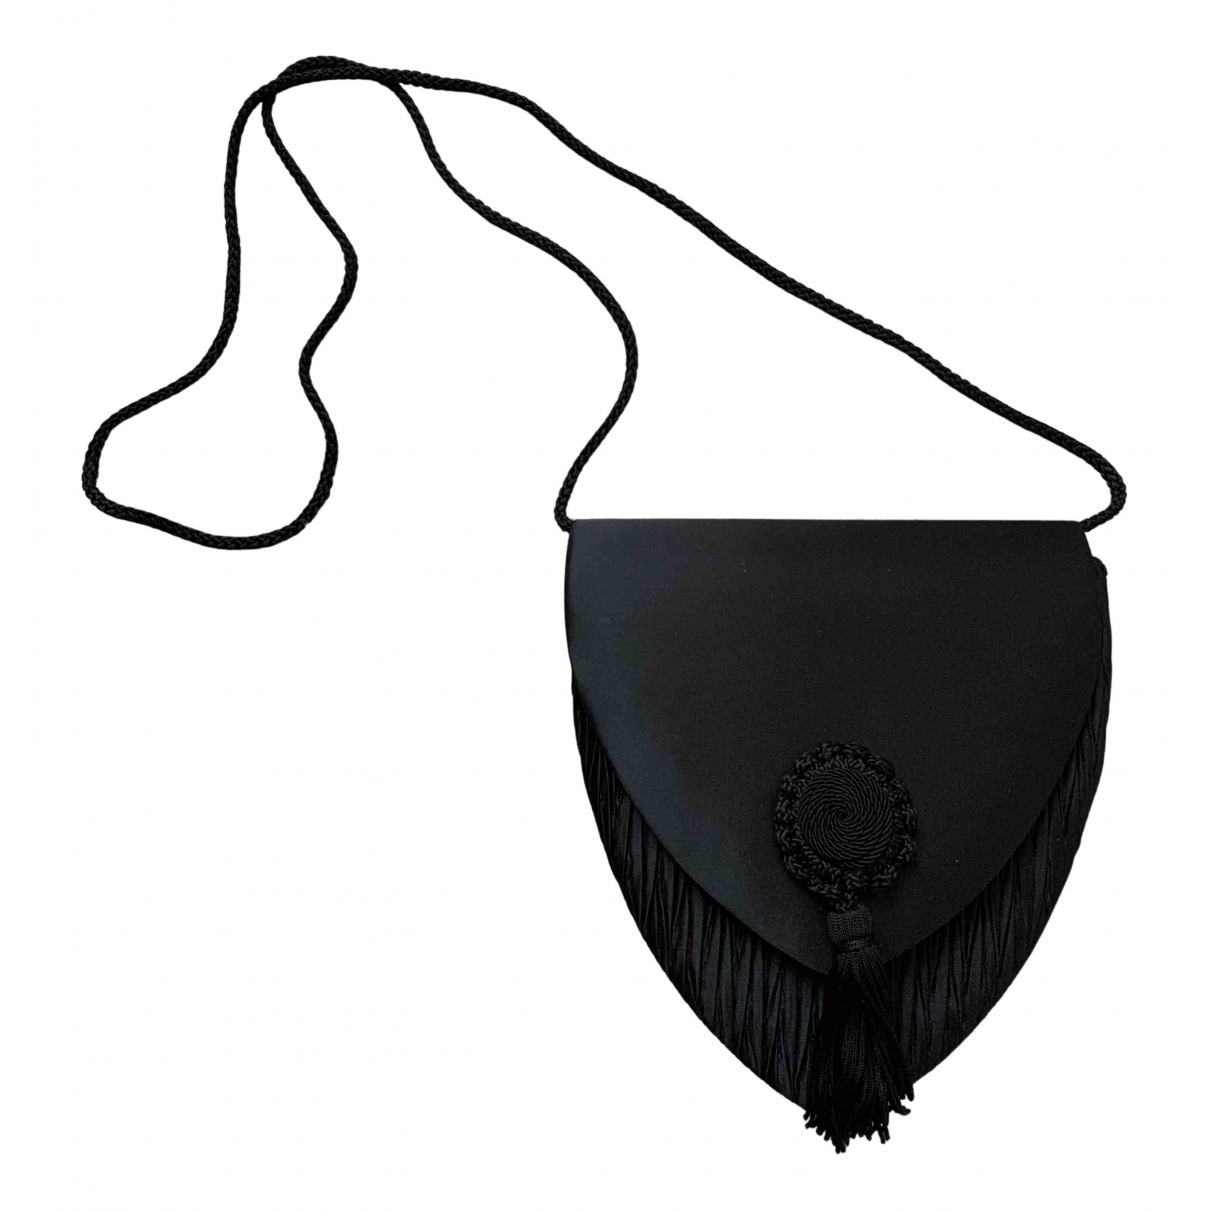 Van Cleef & Arpels N Black Cloth handbag for Women N